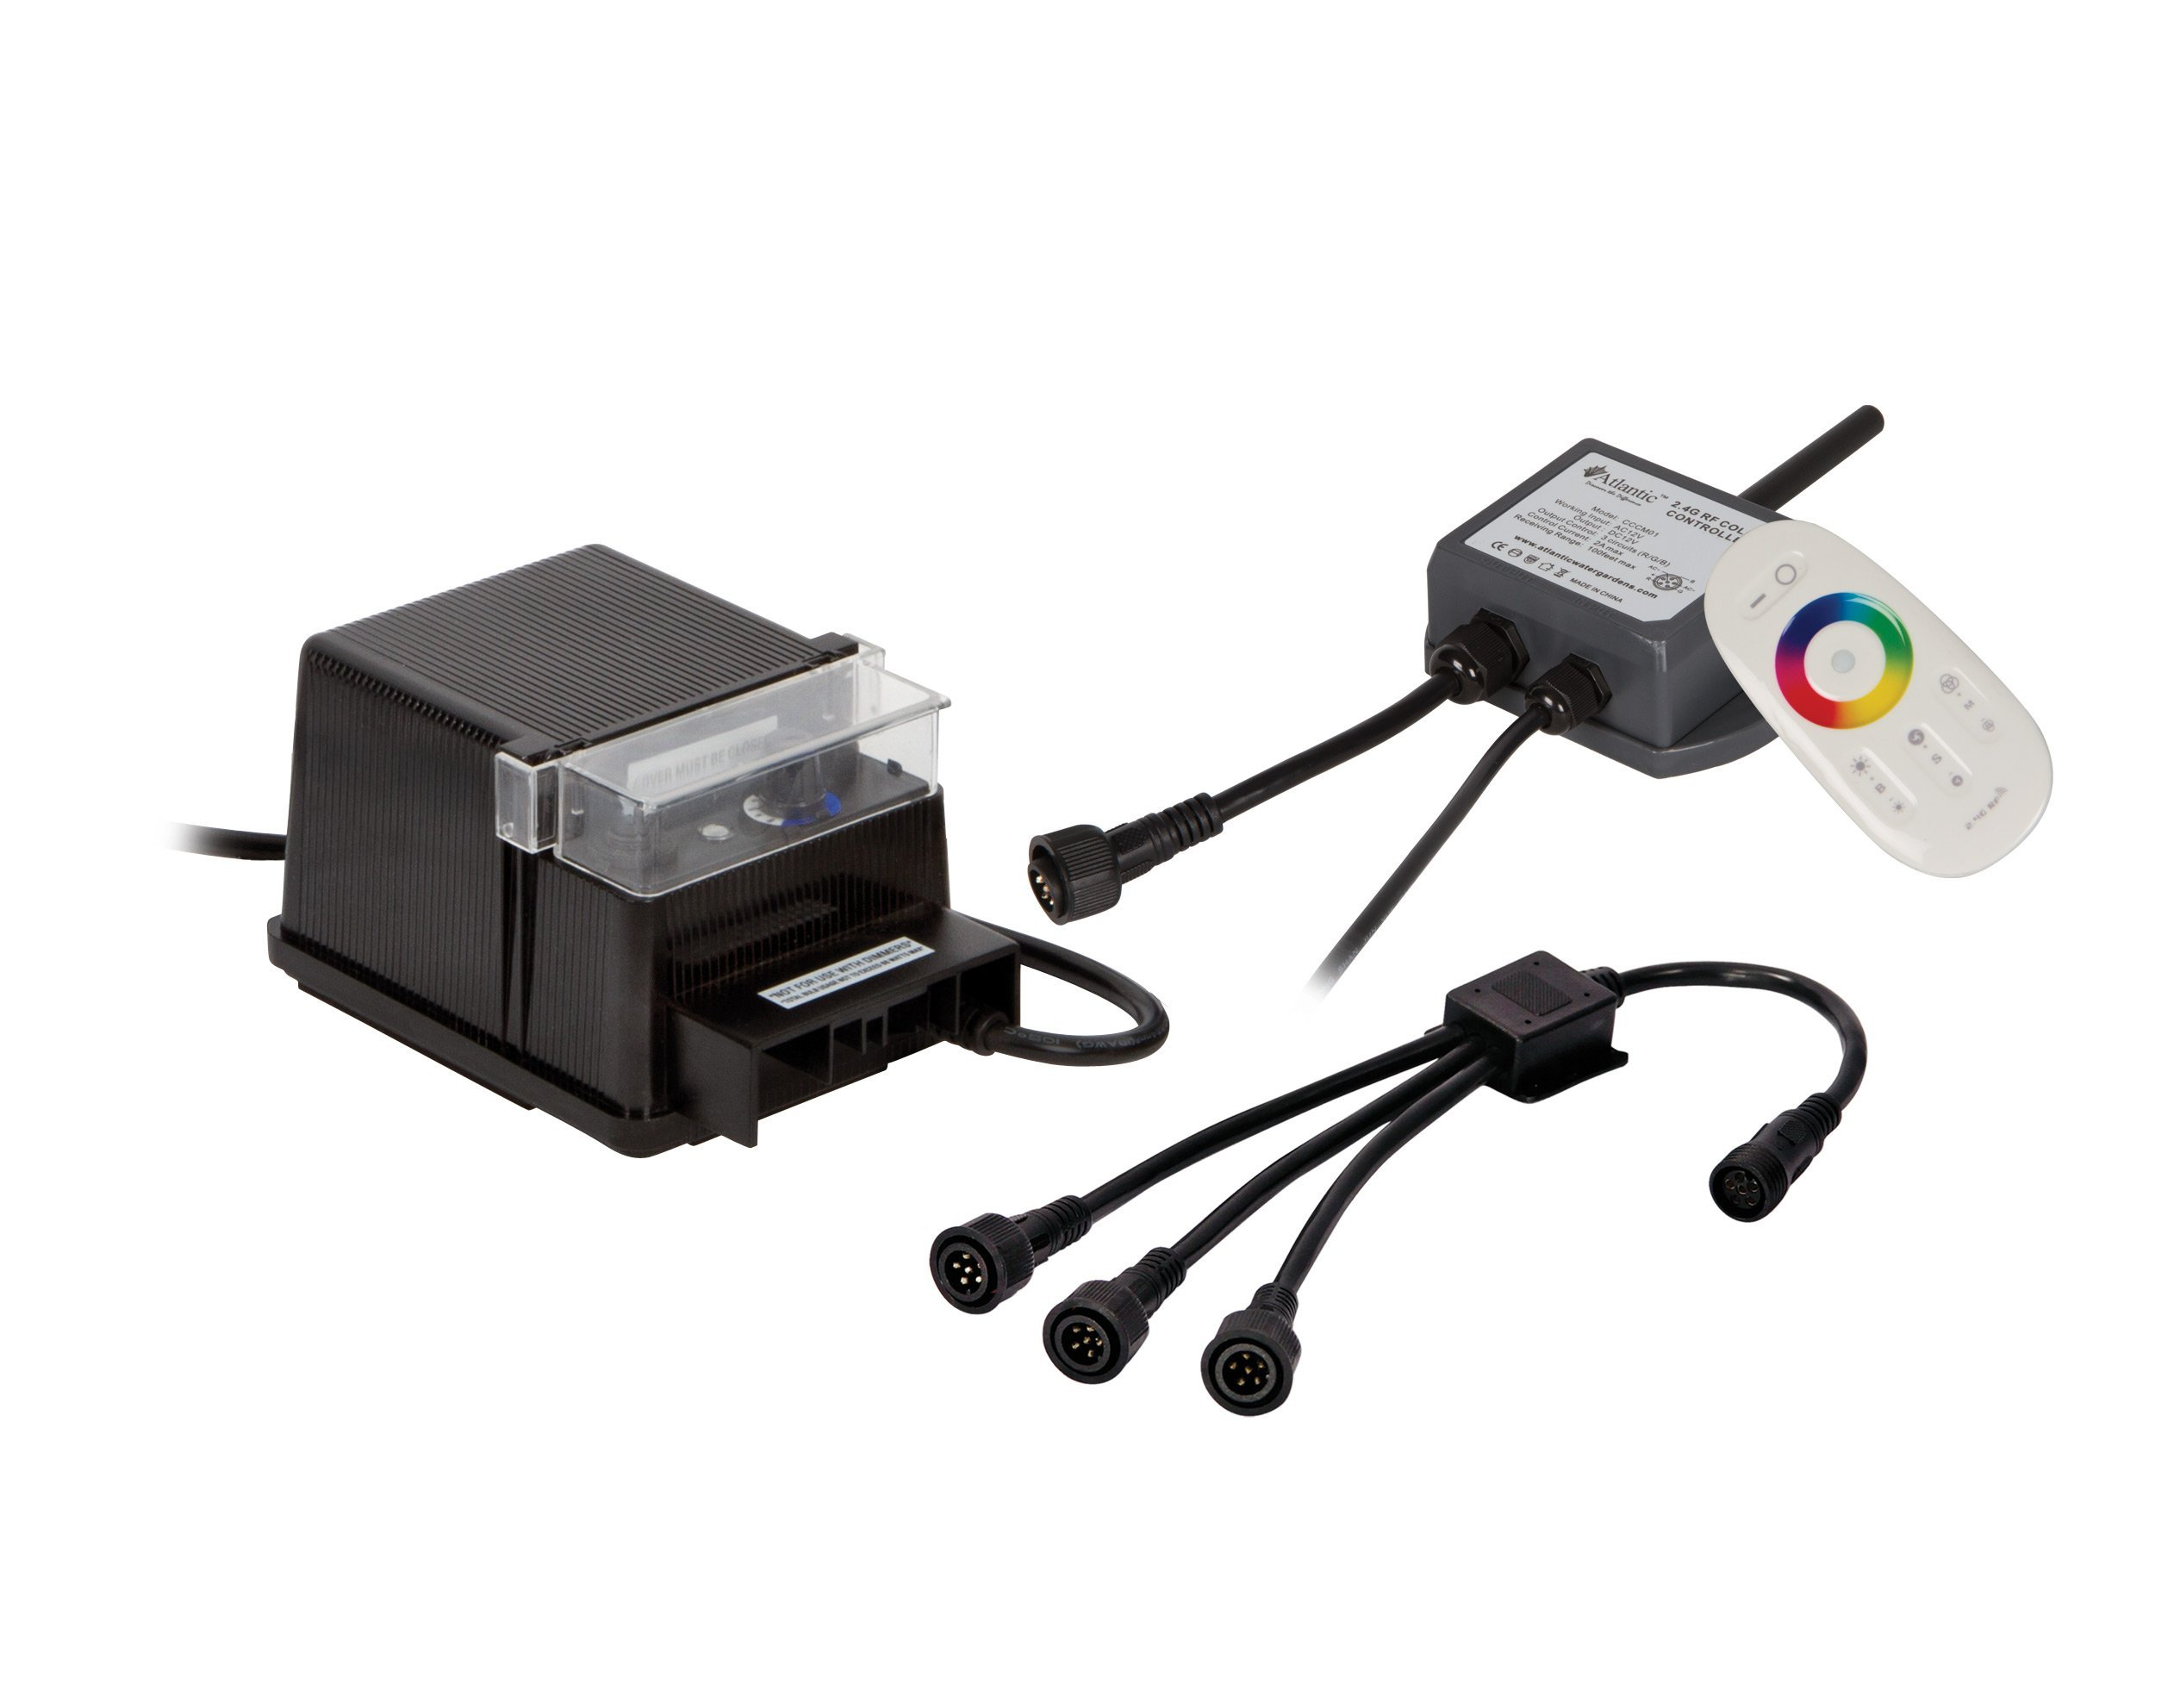 Atlantic Water Gardens 7-Way Wiring Kit for Color Changing LED Lights with Control Module & Remote